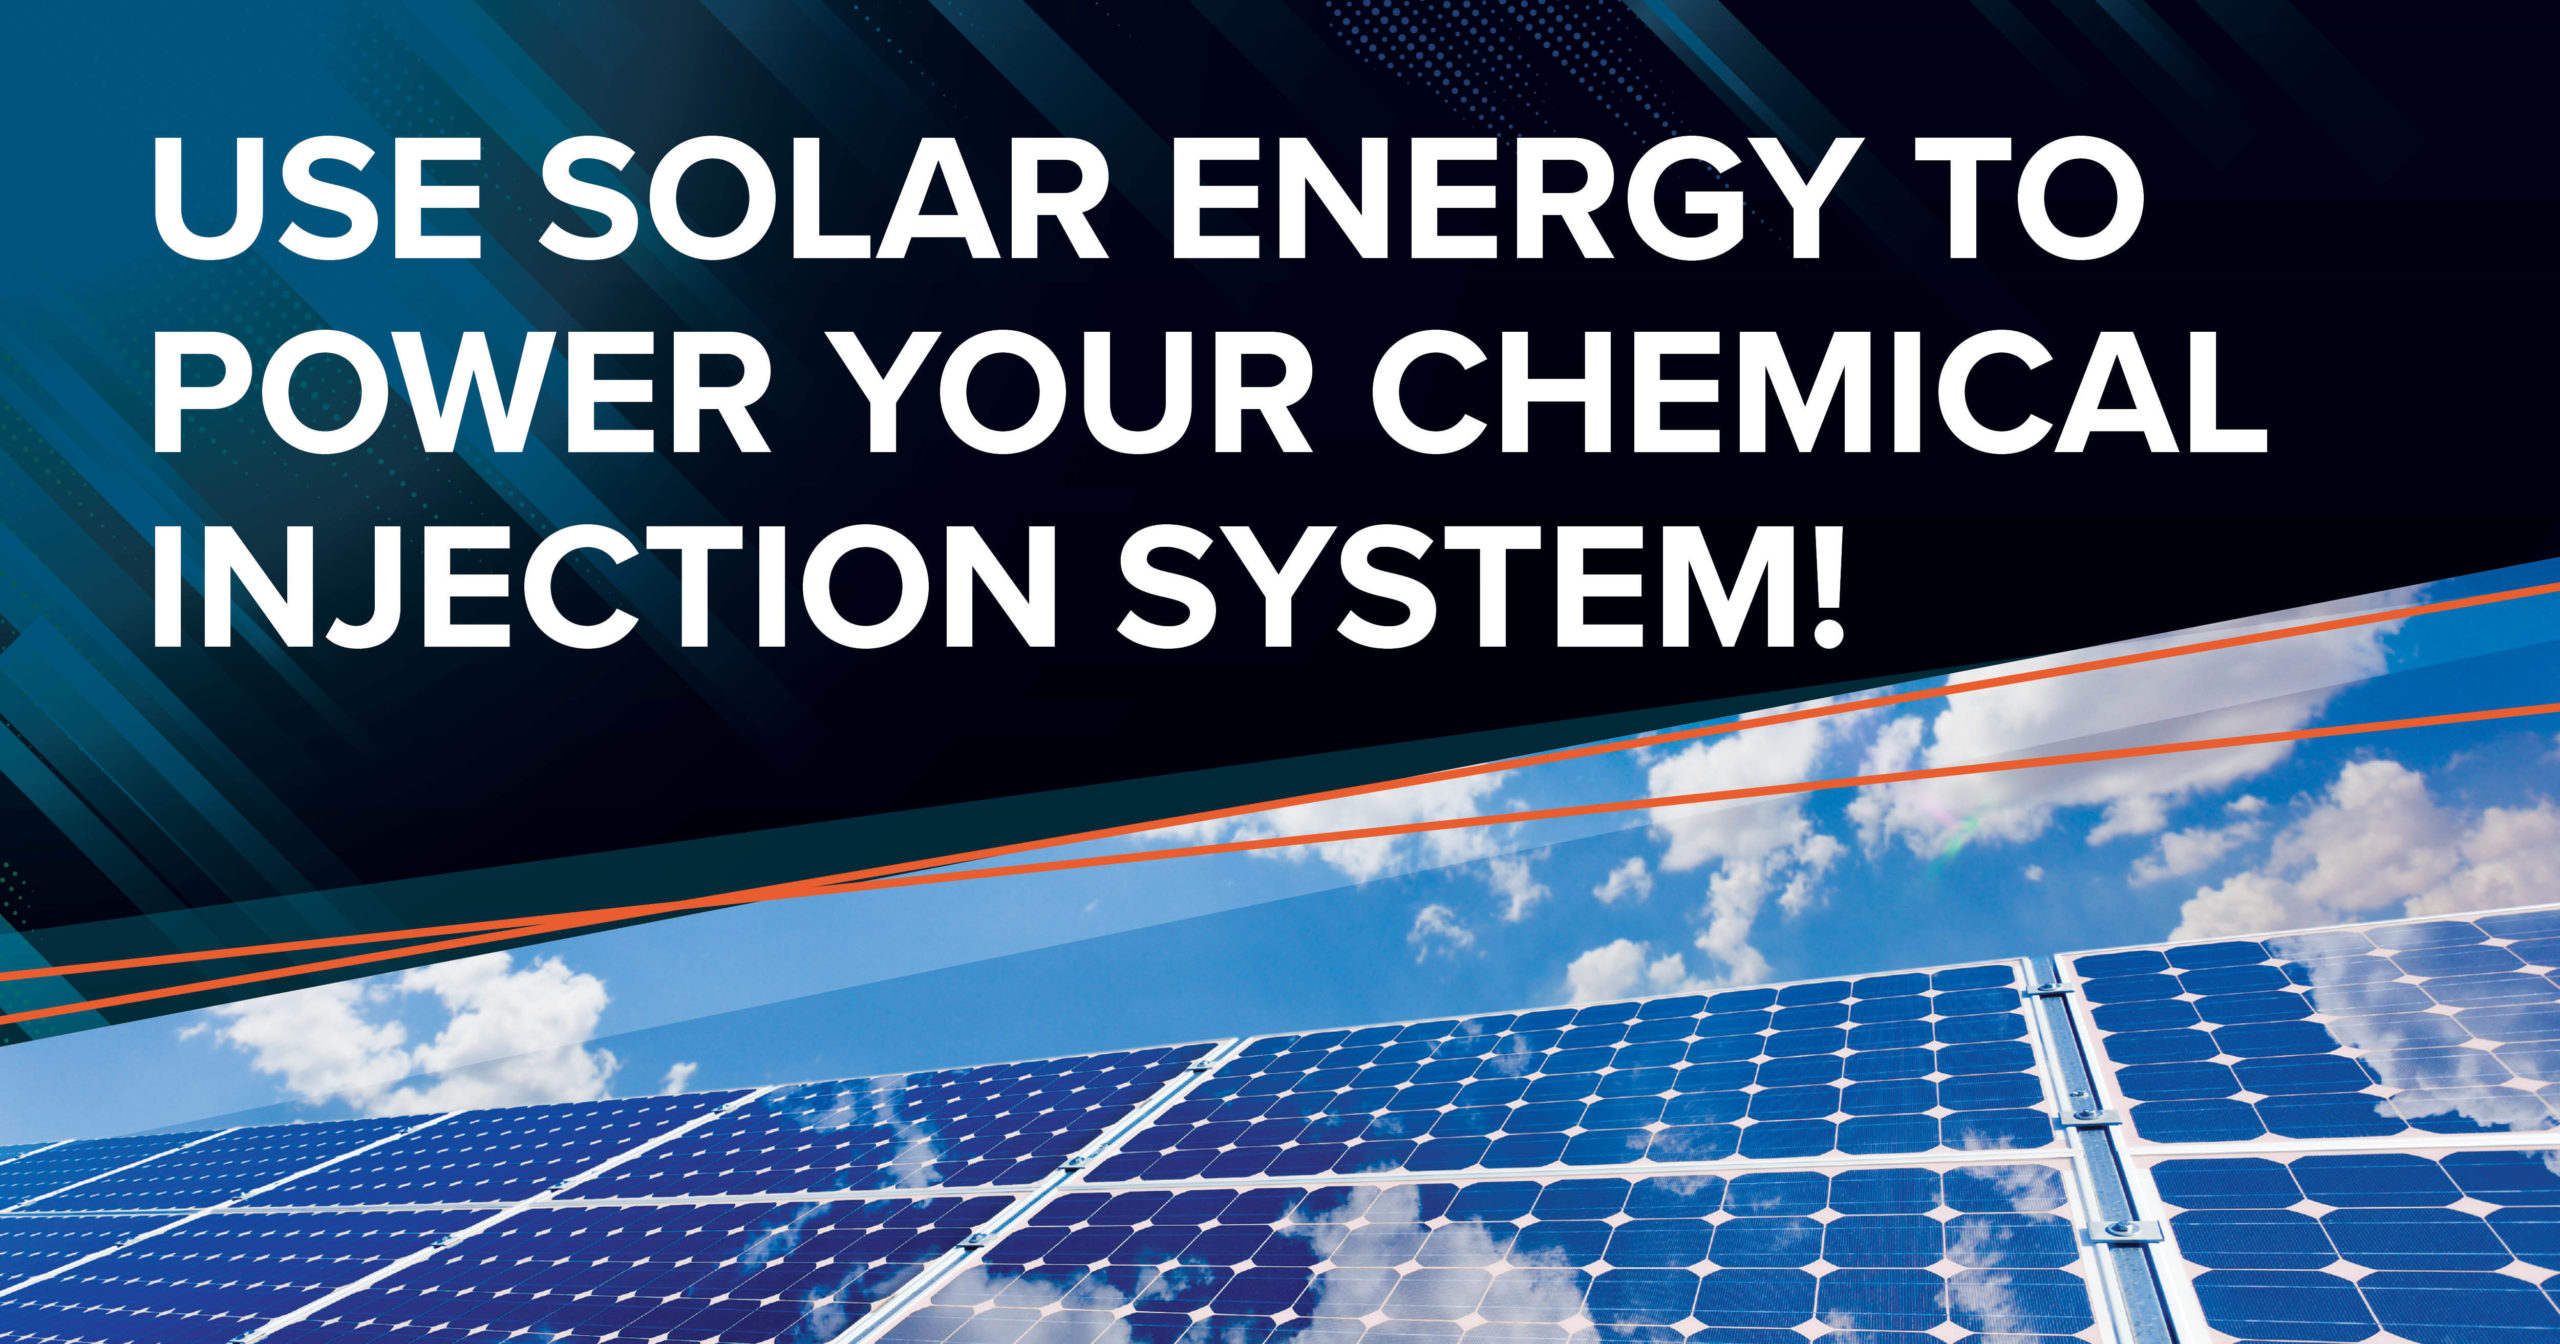 Use Solar Energy to Power Your Chemical Injection System!